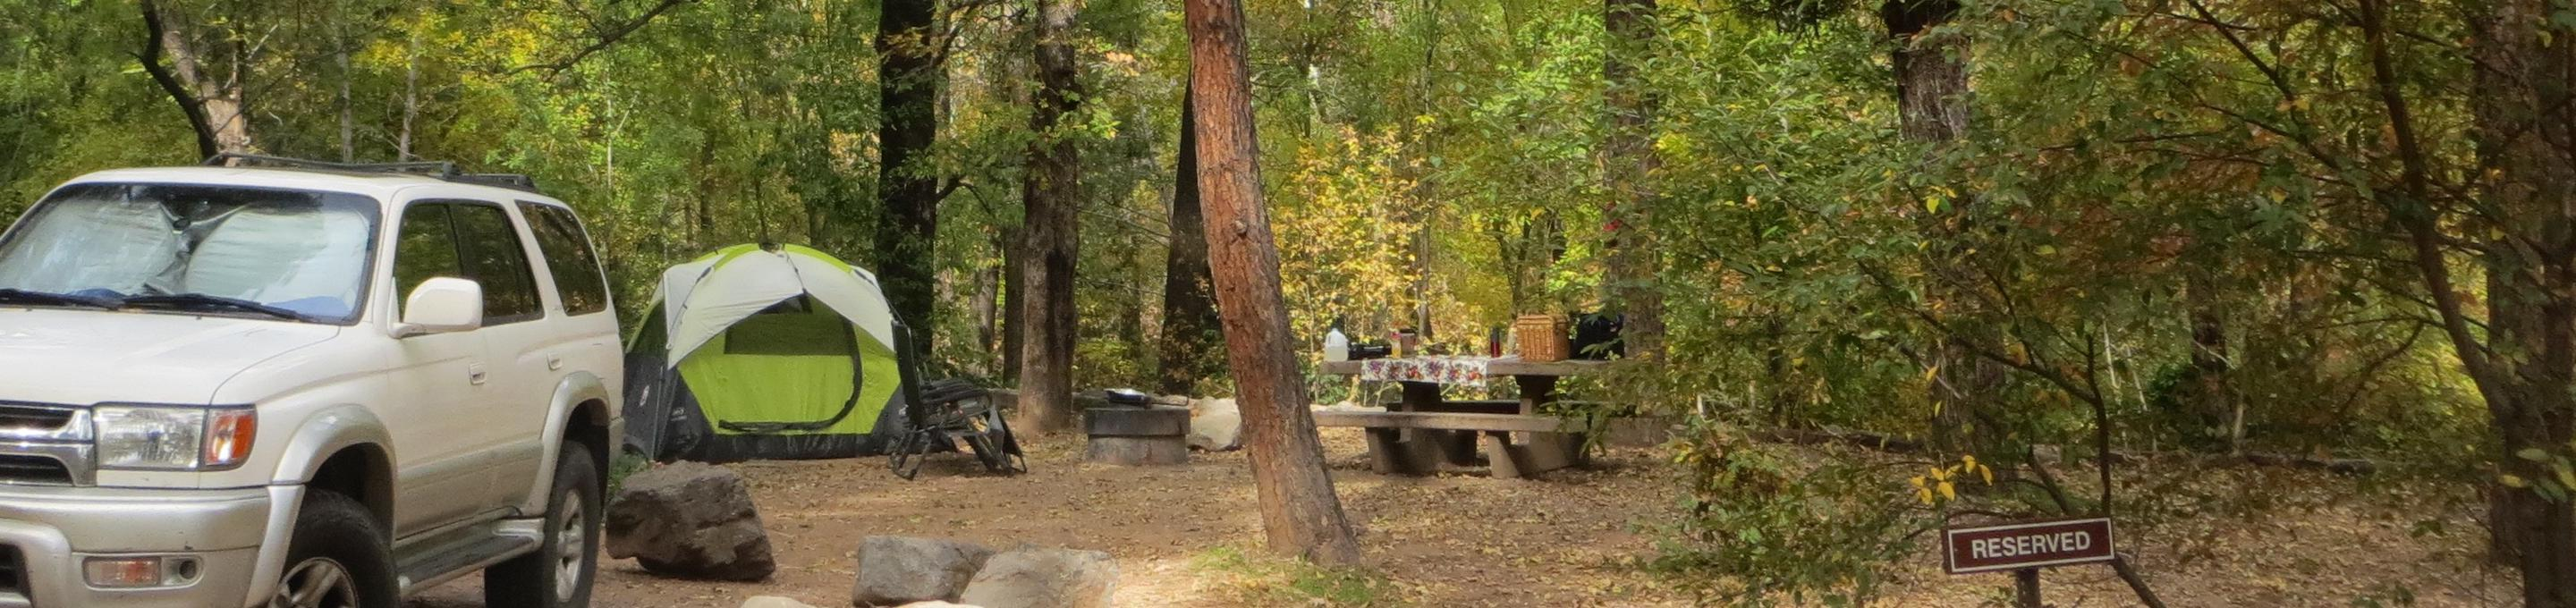 Manzanita Campground site #19 featuring the treed picnic area, camping space, and fire pit.